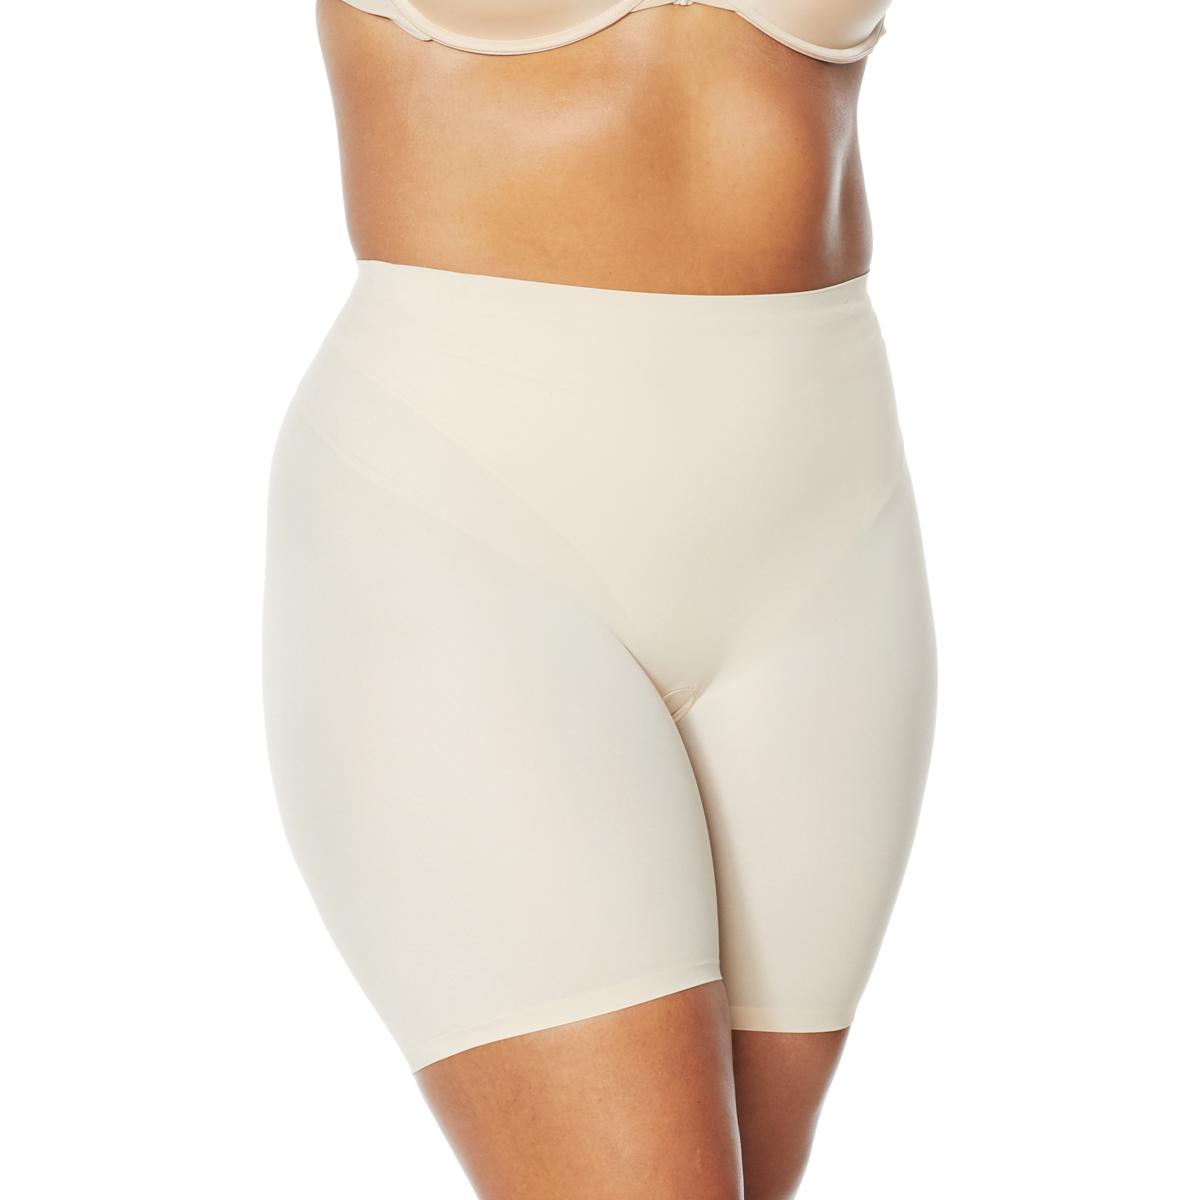 Maidenform Smoothing Cool Comfort Thigh Slimmer Mid Rise